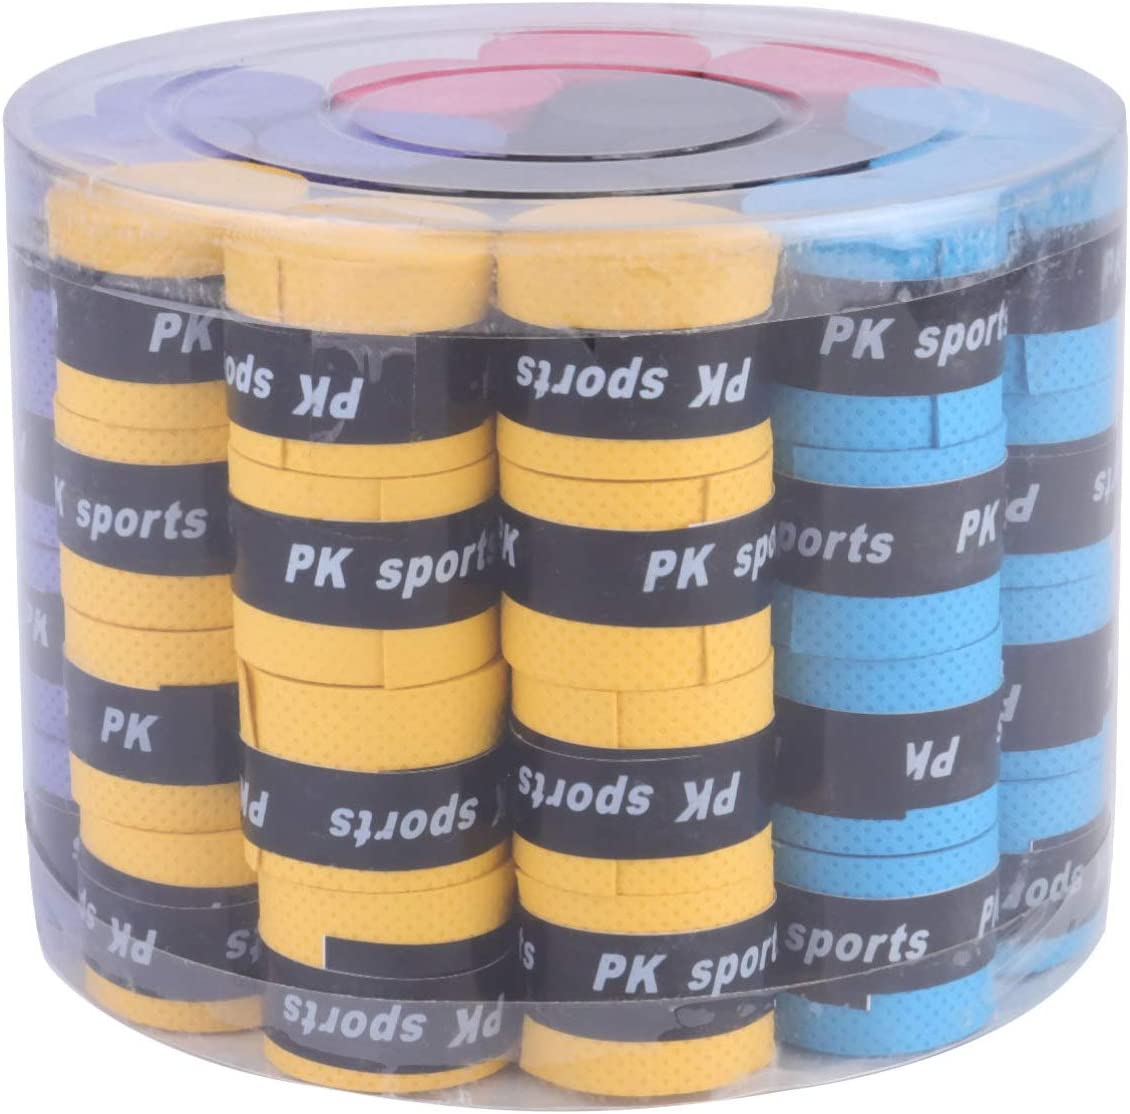 BESPORTBLE 60 Pieces Max 68% OFF unisex Tennis Racket Grips Tape Badminton O